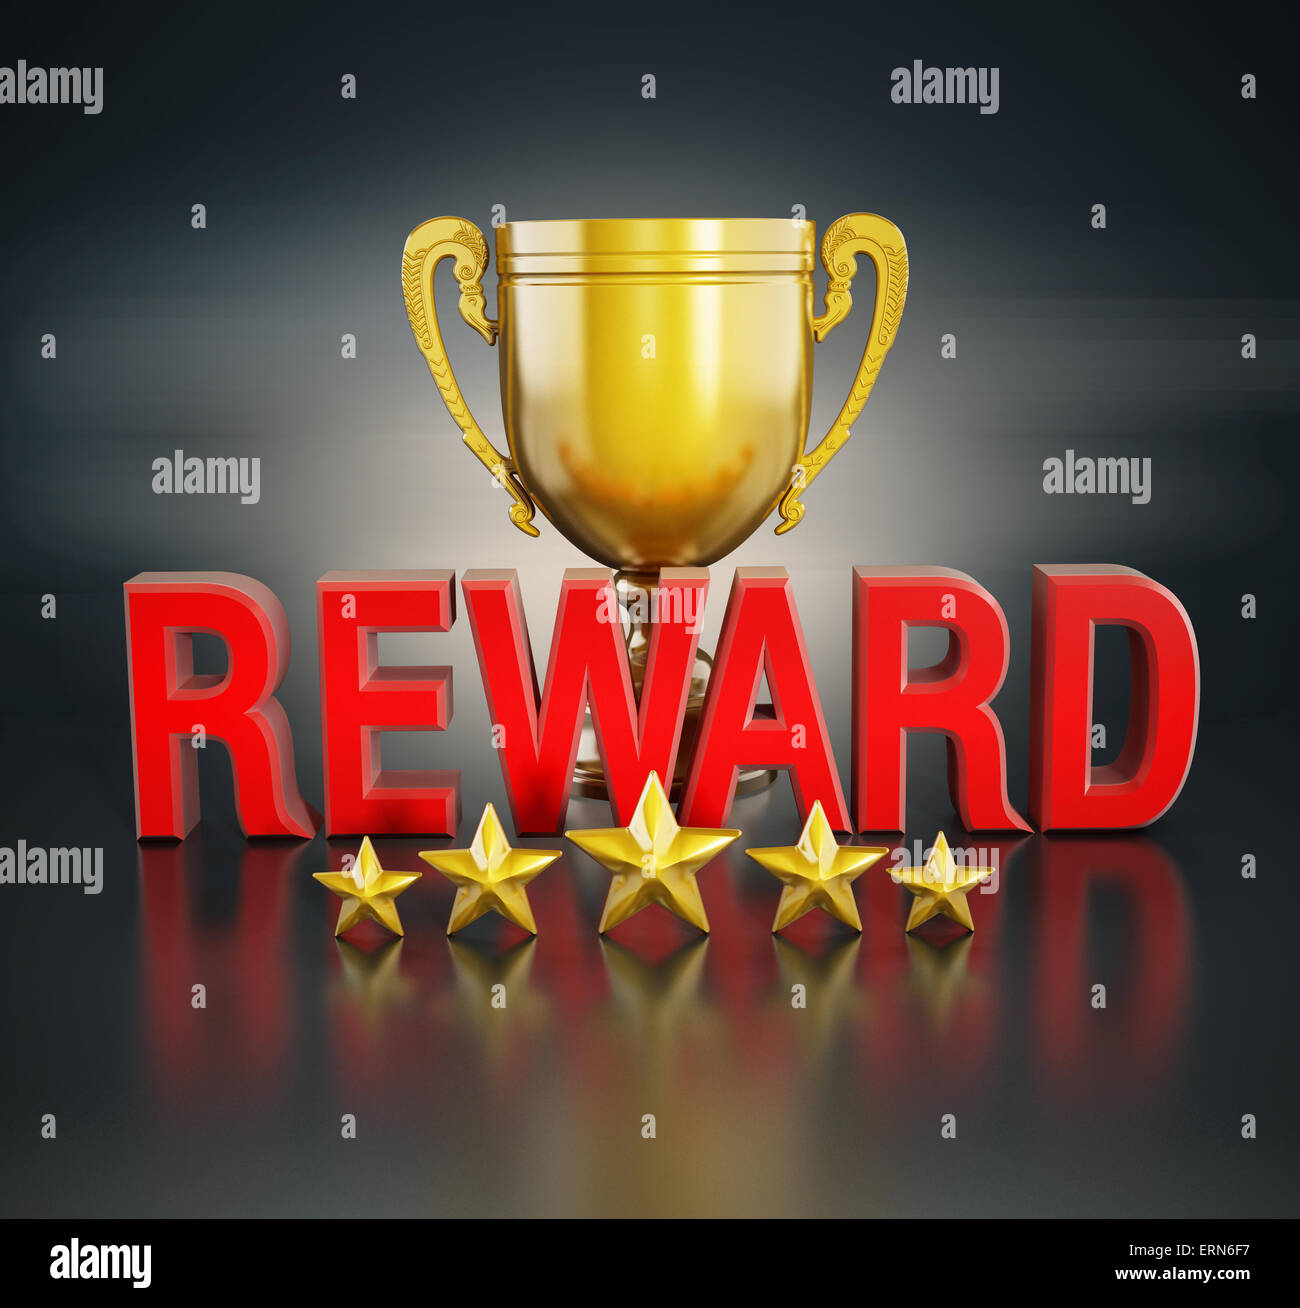 Reward text, gold cup and five stars - Stock Image